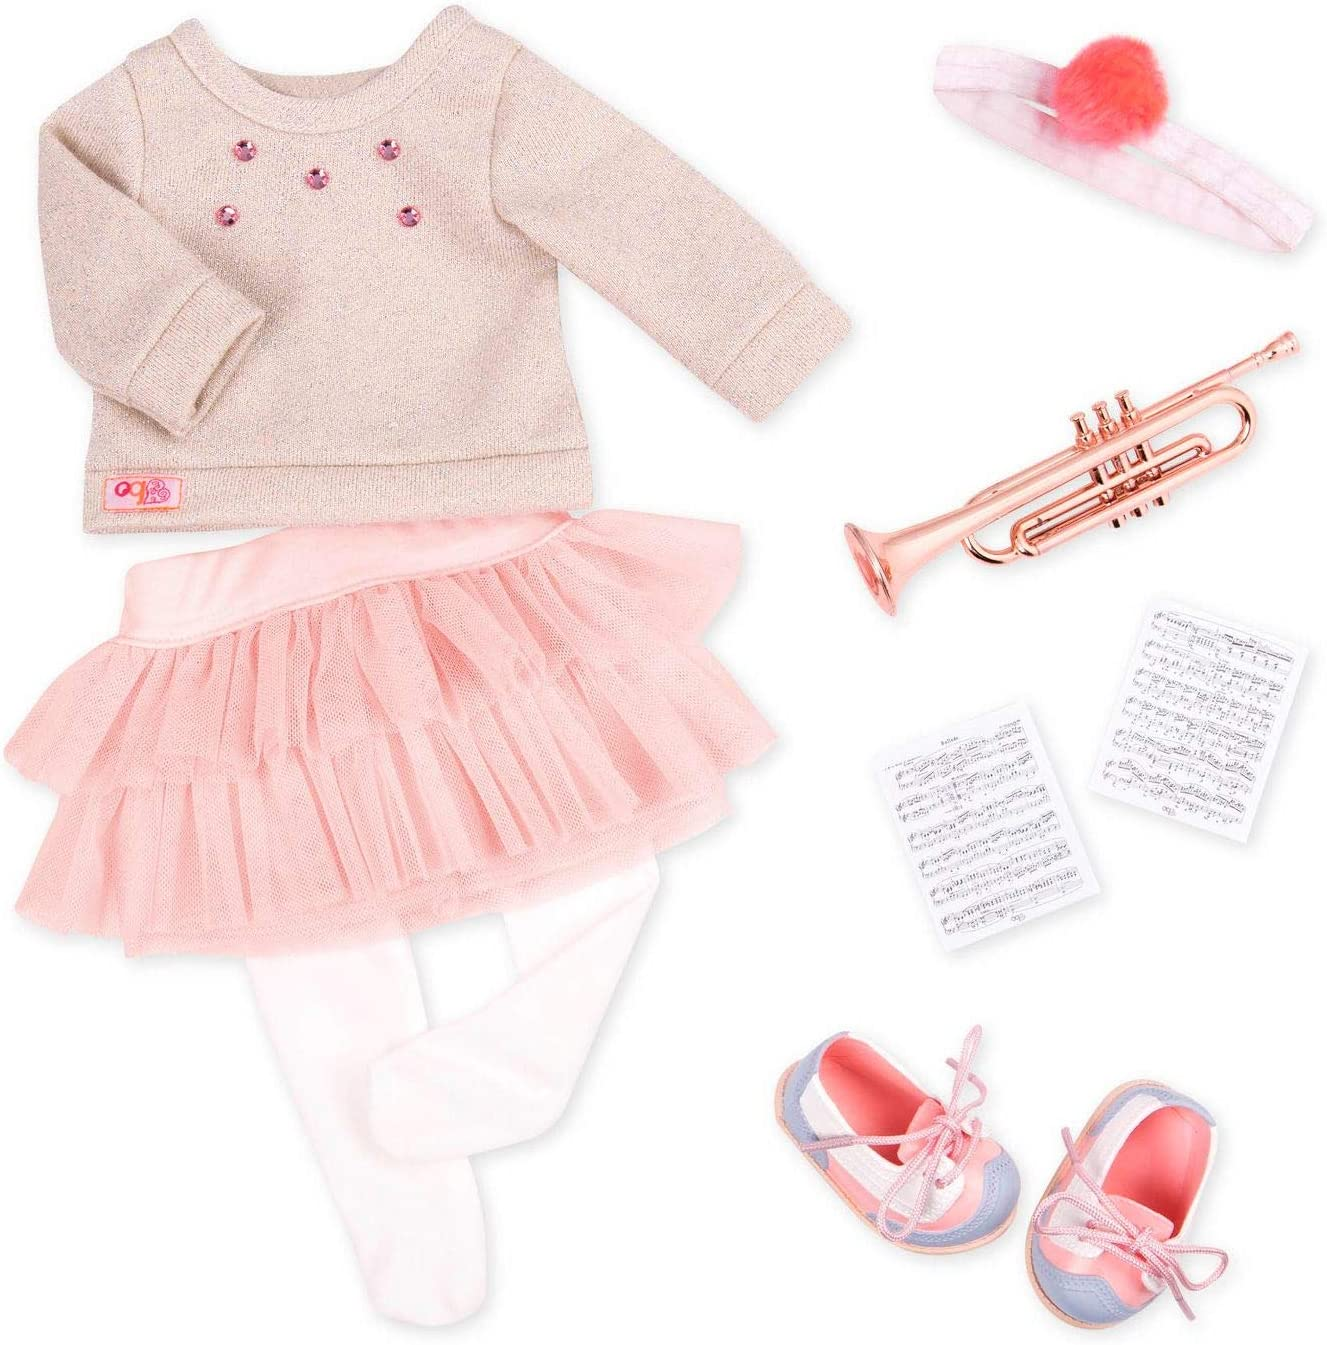 Our Generation by Battat - Fashion Notes Outfit - Deluxe Musical Outfit & Accessory Set with Trumpet for 18